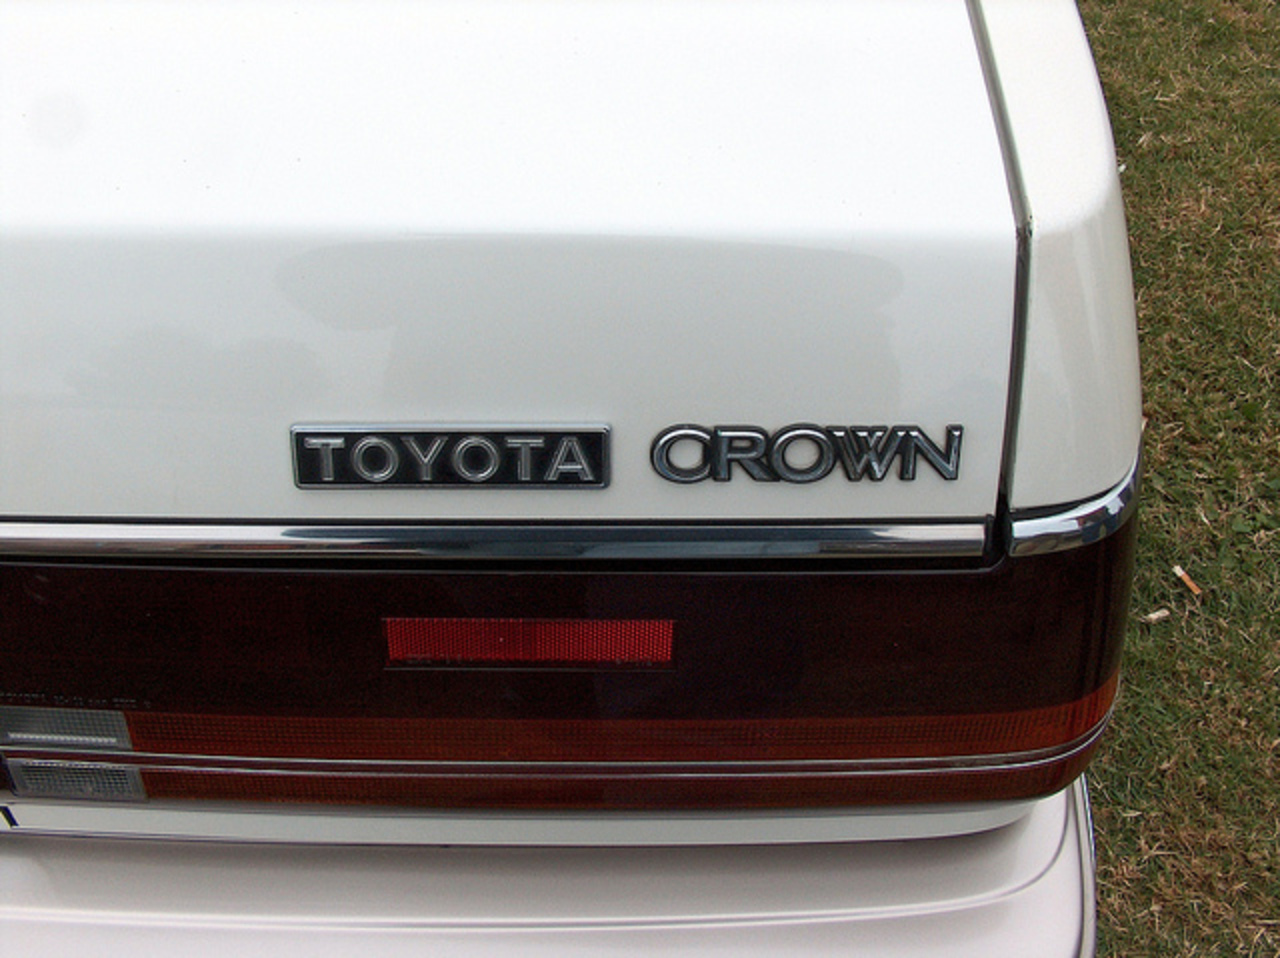 1986 Toyota Crown Royal Saloon badge | Flickr - Photo Sharing!